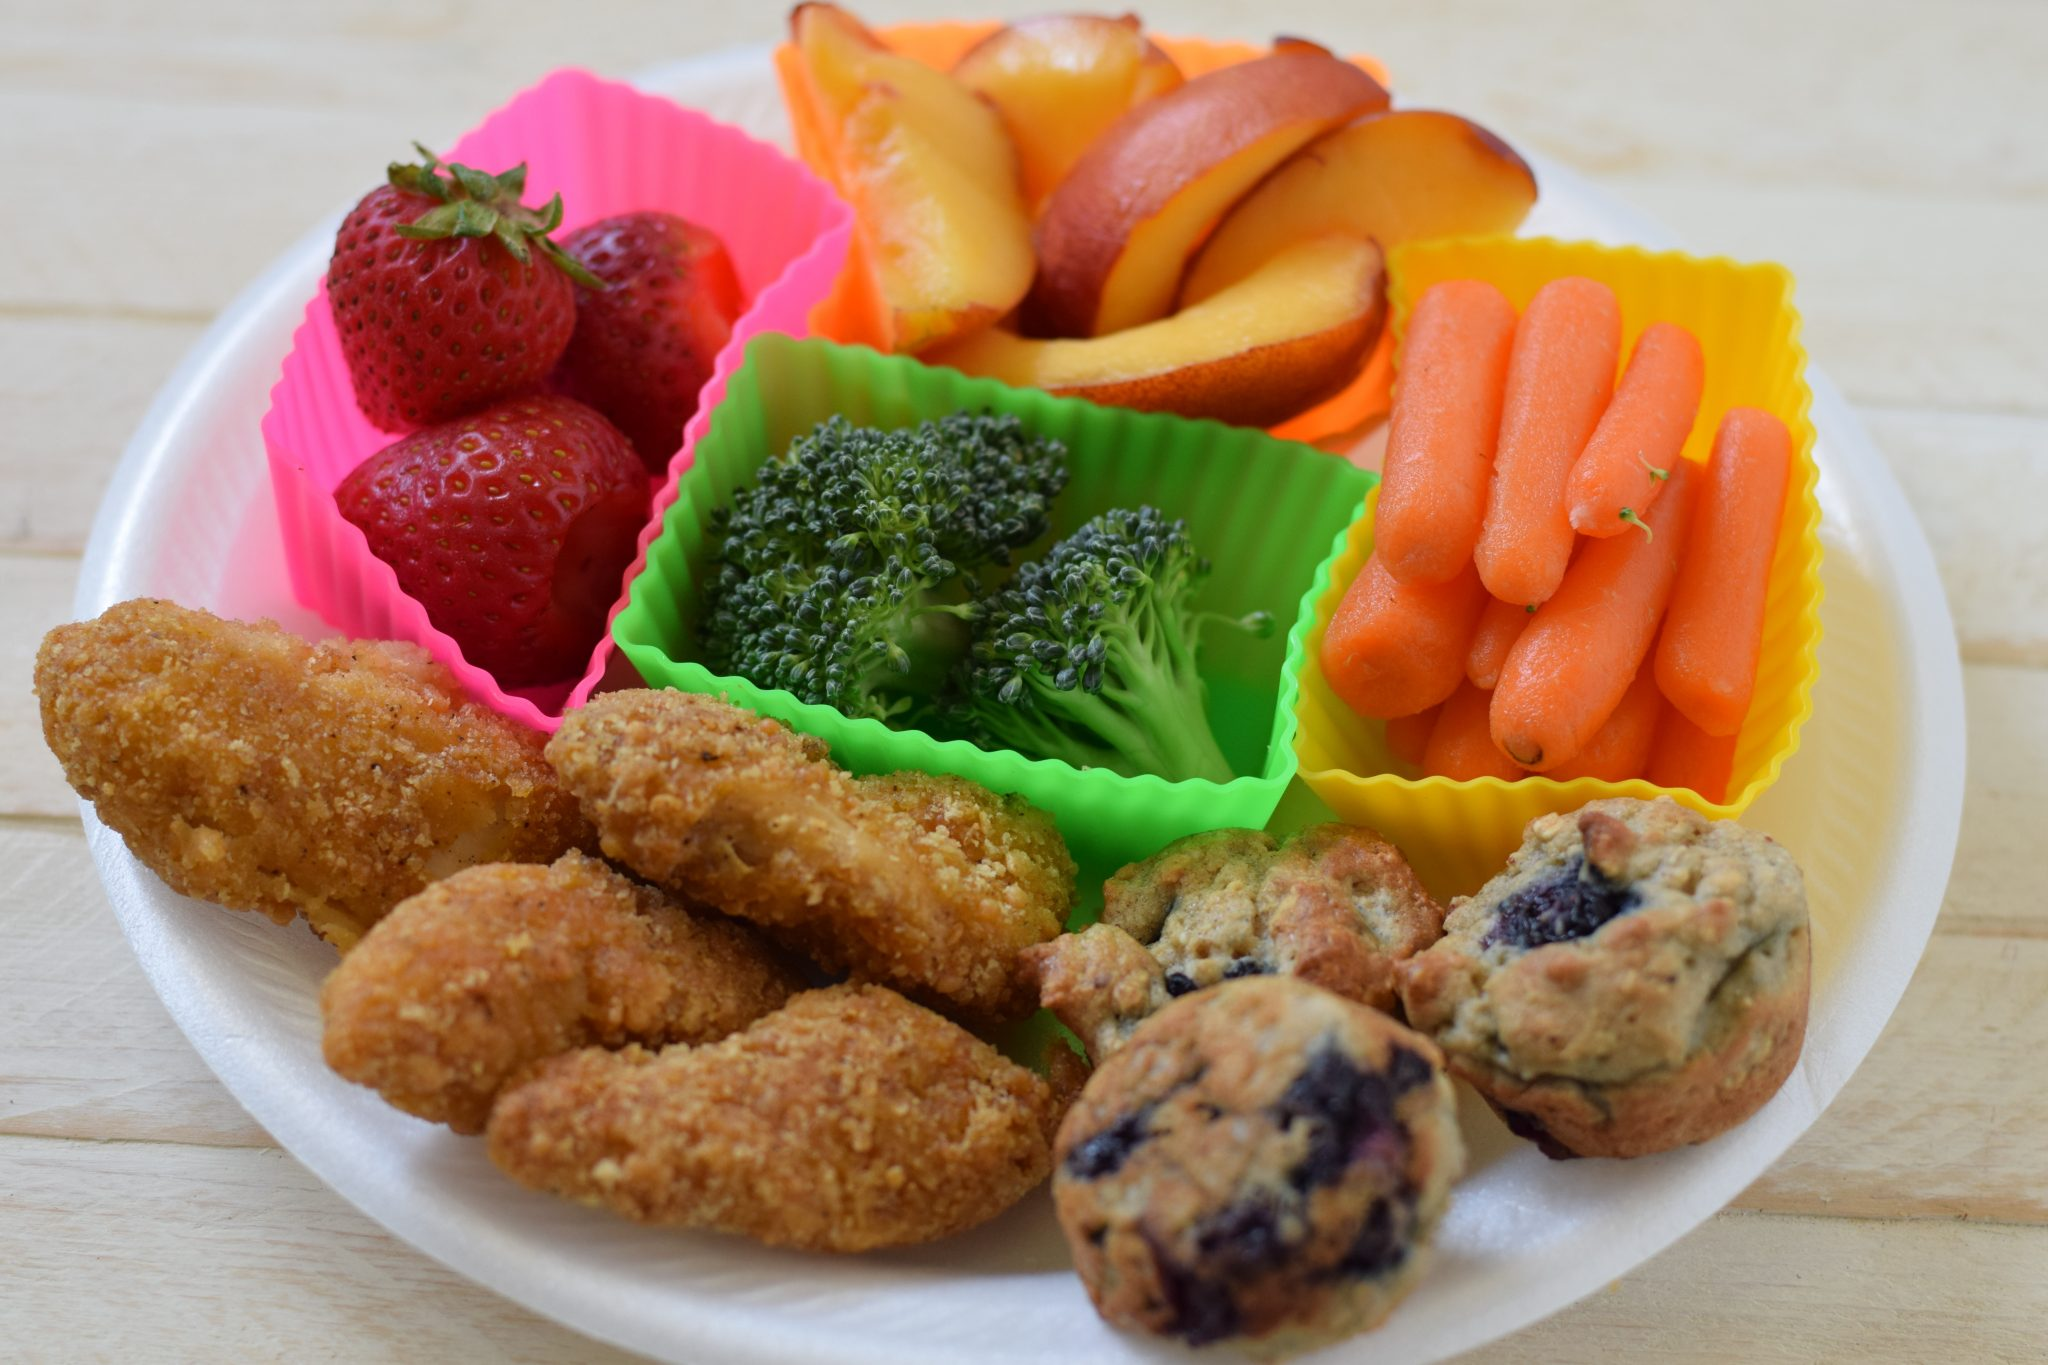 this is a picture of food to put in a bento box. Read more at beneficial-bento.com